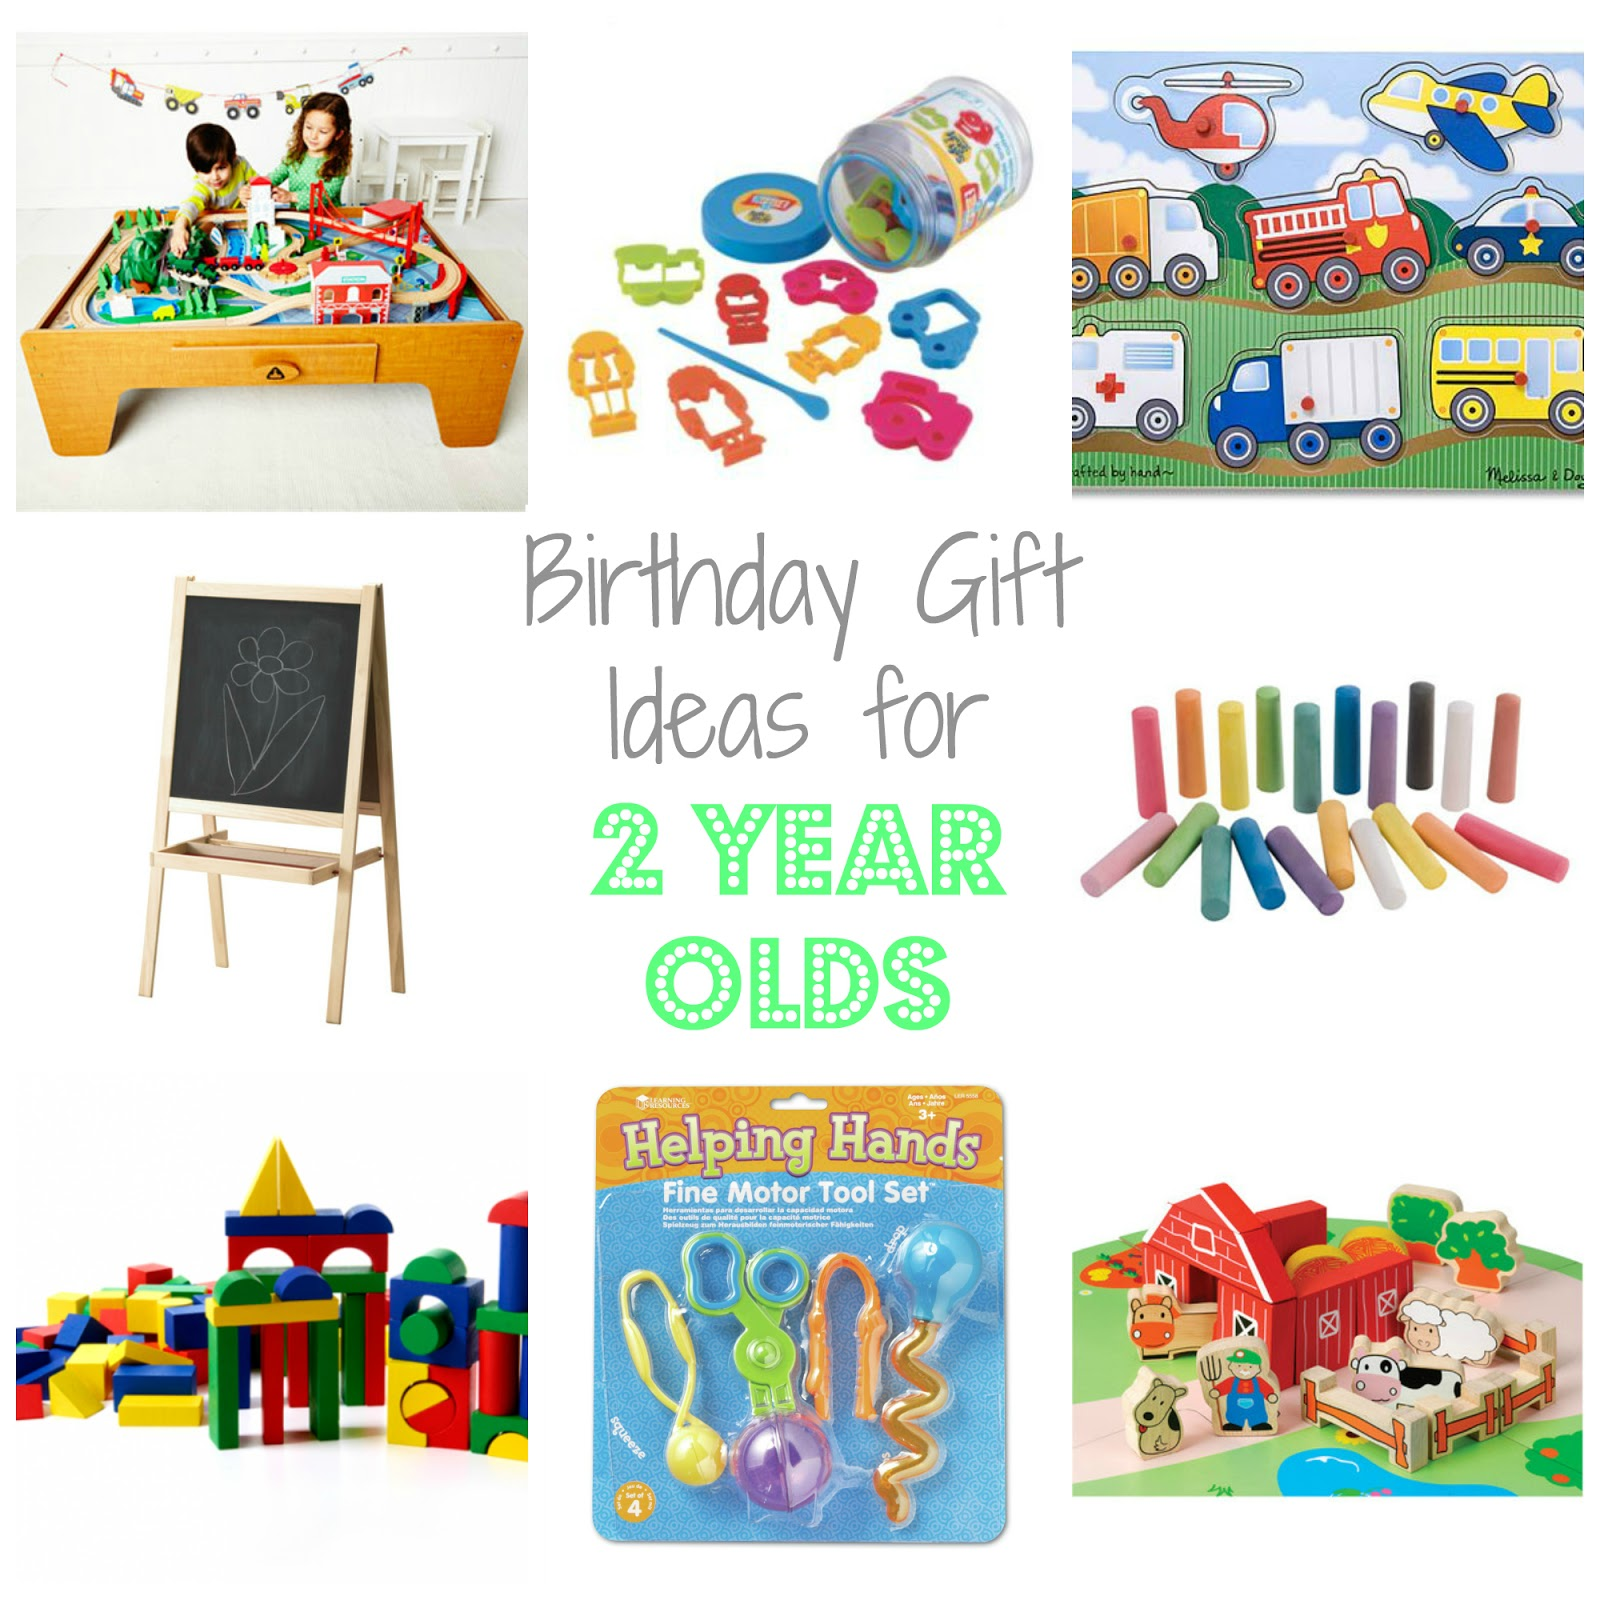 Birthday Gift Ideas for Two Year Olds